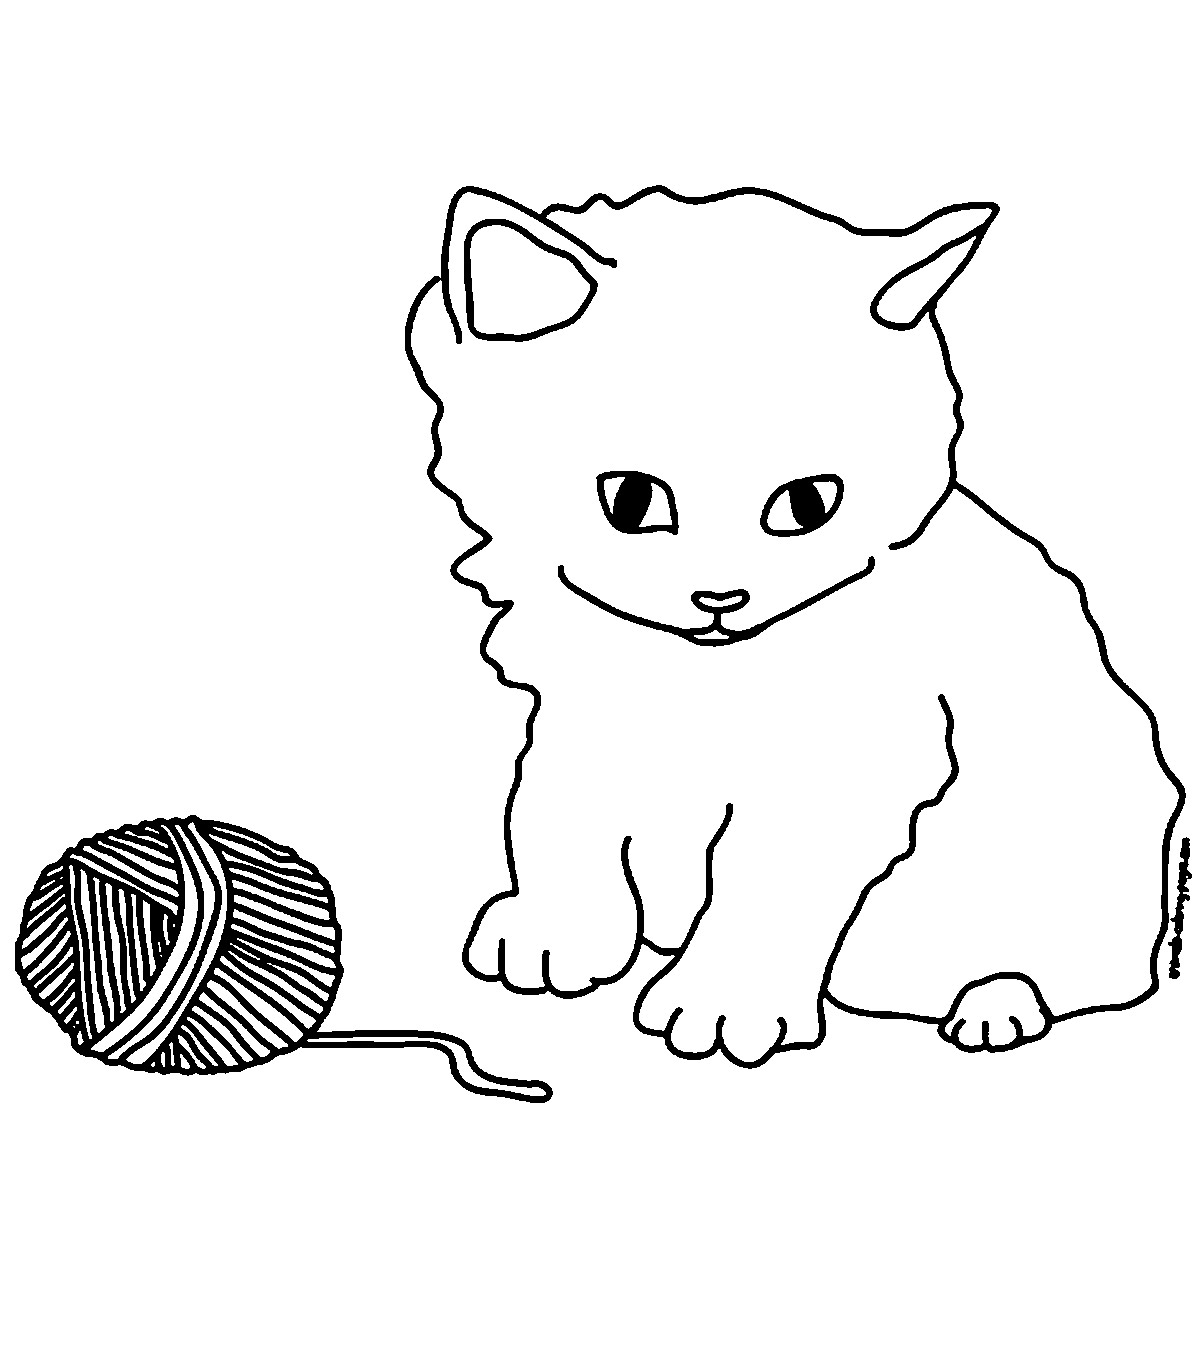 - Top 15 Free Printable Kitten Coloring Pages Online